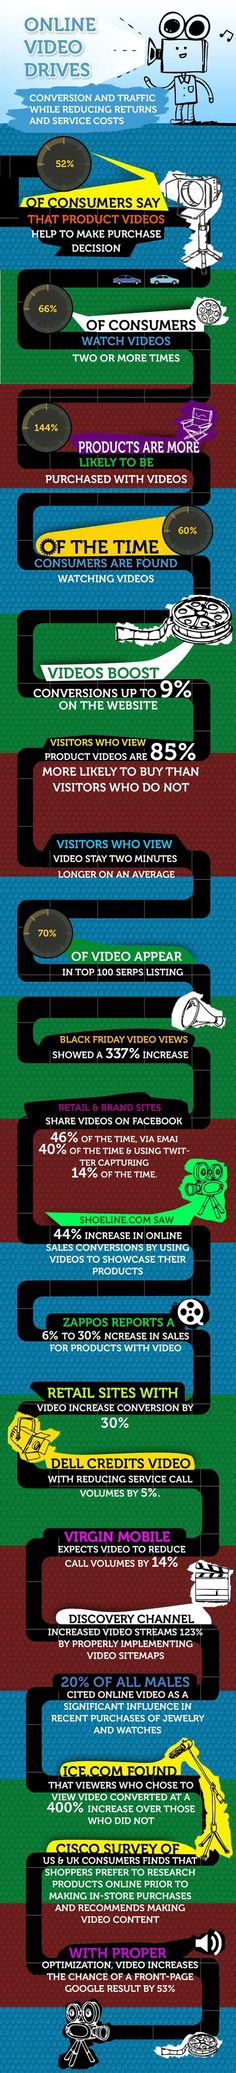 Video production is one of the marketing tactics that drives customers, traffic and online leads. In the recent survey's we found the effectiveness of video marketing and long-term benefits of videos. Customers repeatedly says, videos help more than the c Marketing Mail, Marketing Tactics, Marketing Digital, Content Marketing, Internet Marketing, Online Marketing, Social Media Marketing, Marketing News, Marketing Software